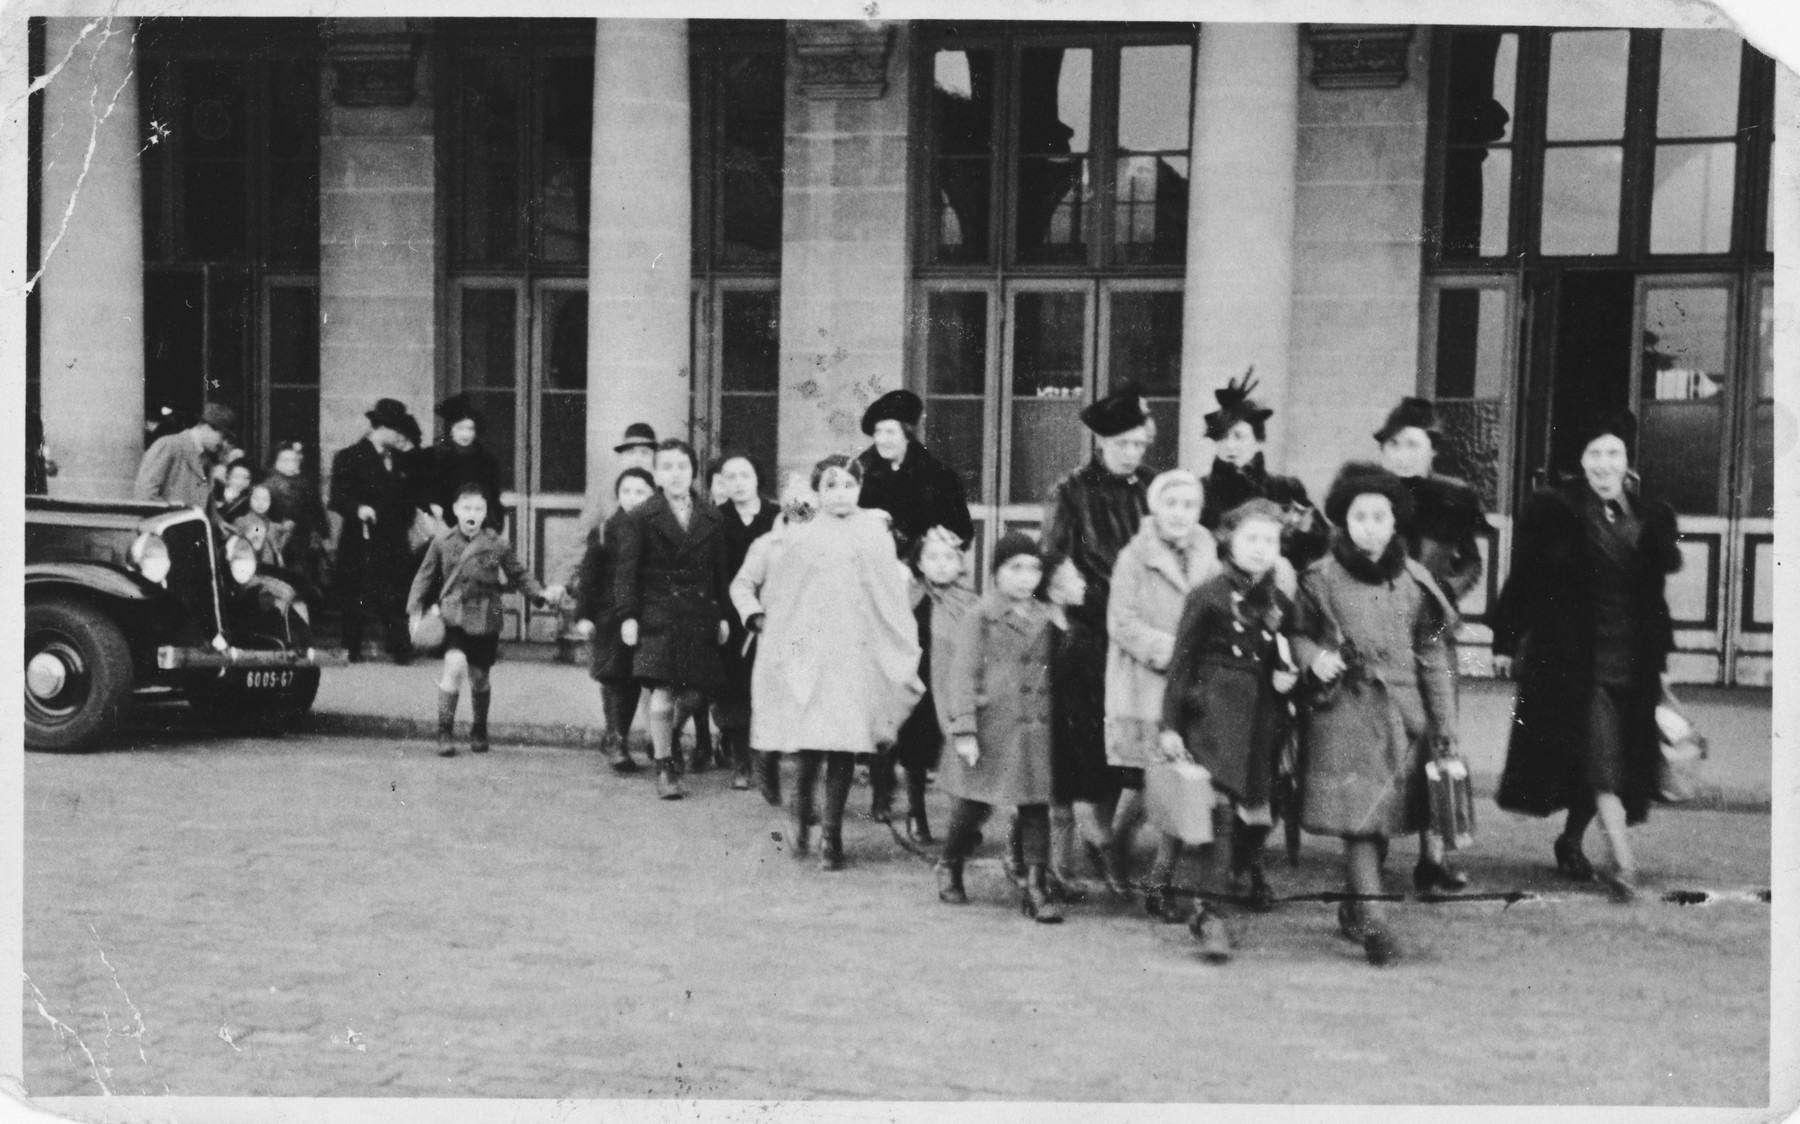 Bertha Marx accompanies a group of Jewish refugee children, including her son Ernest, who have just arrived in Paris on a Kindertransport from Germany.